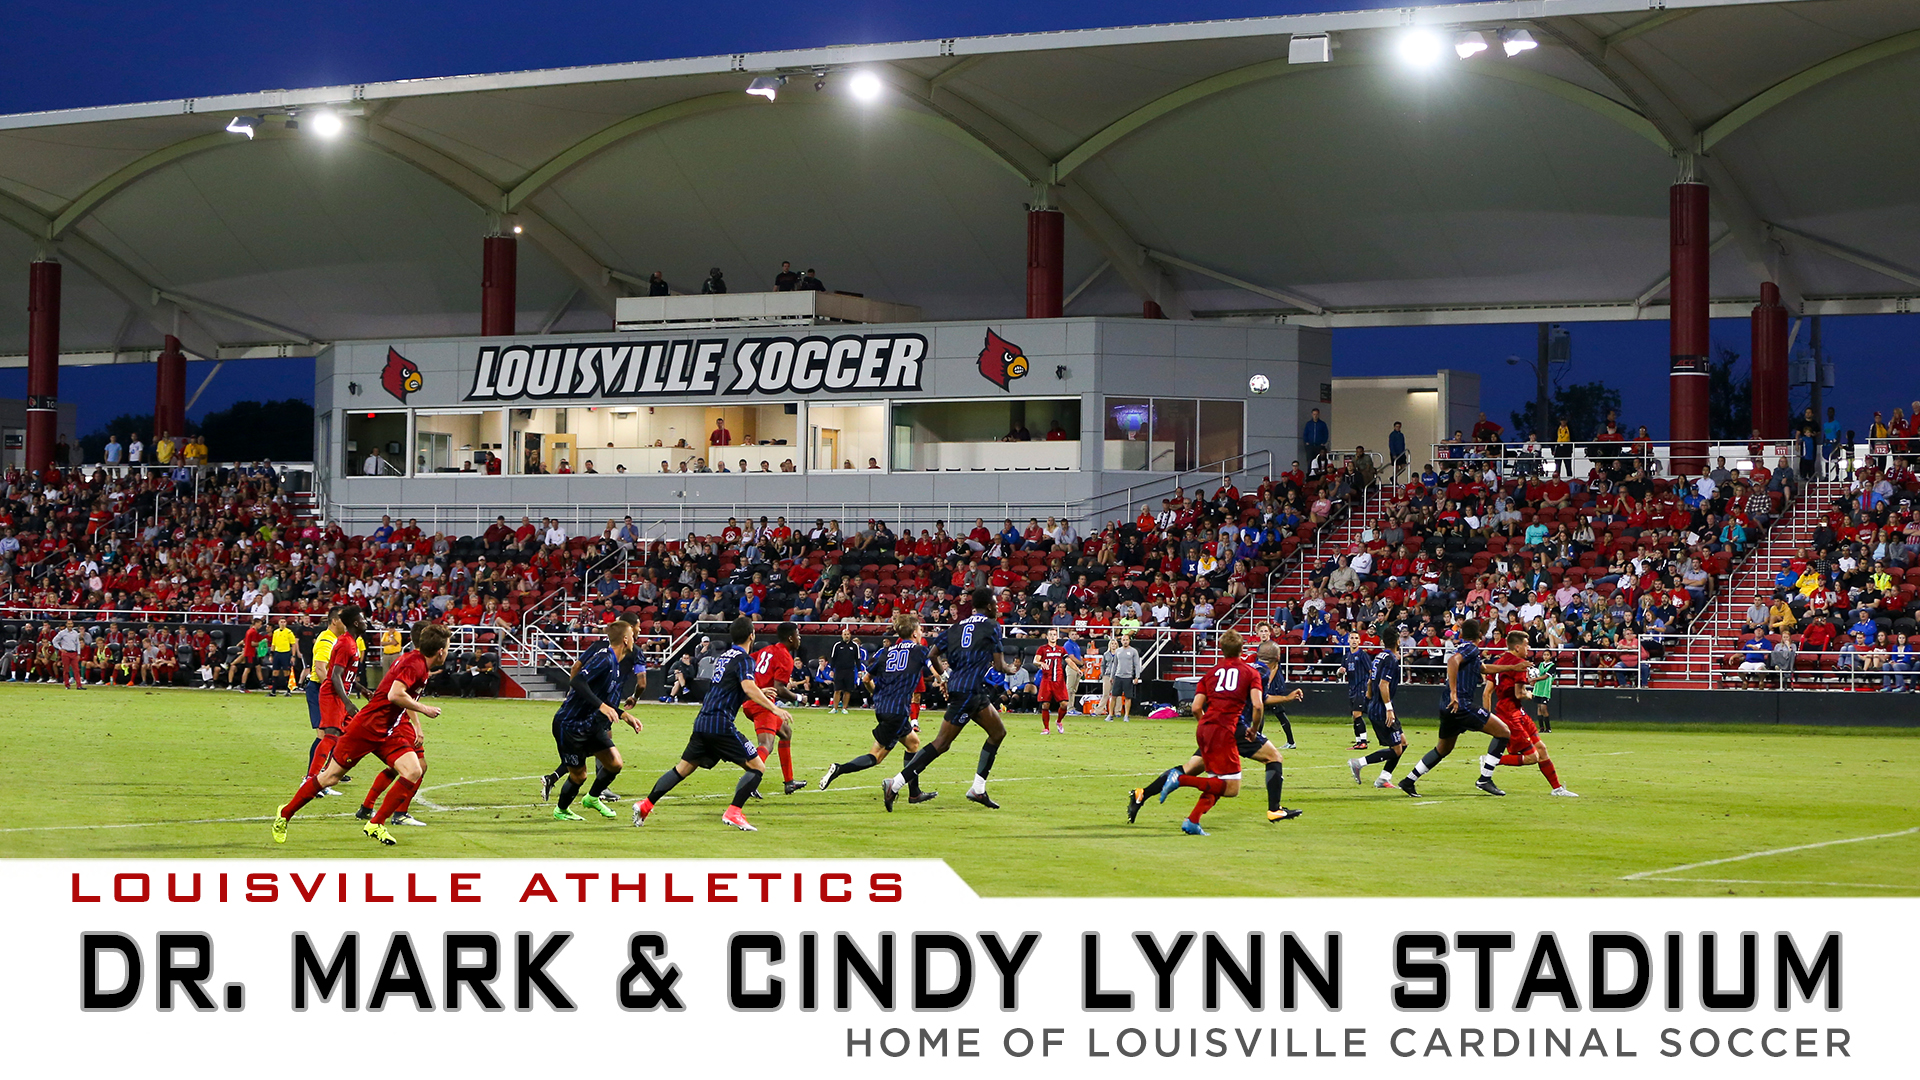 Dr  Mark & Cindy Lynn Stadium - Facilities - University of